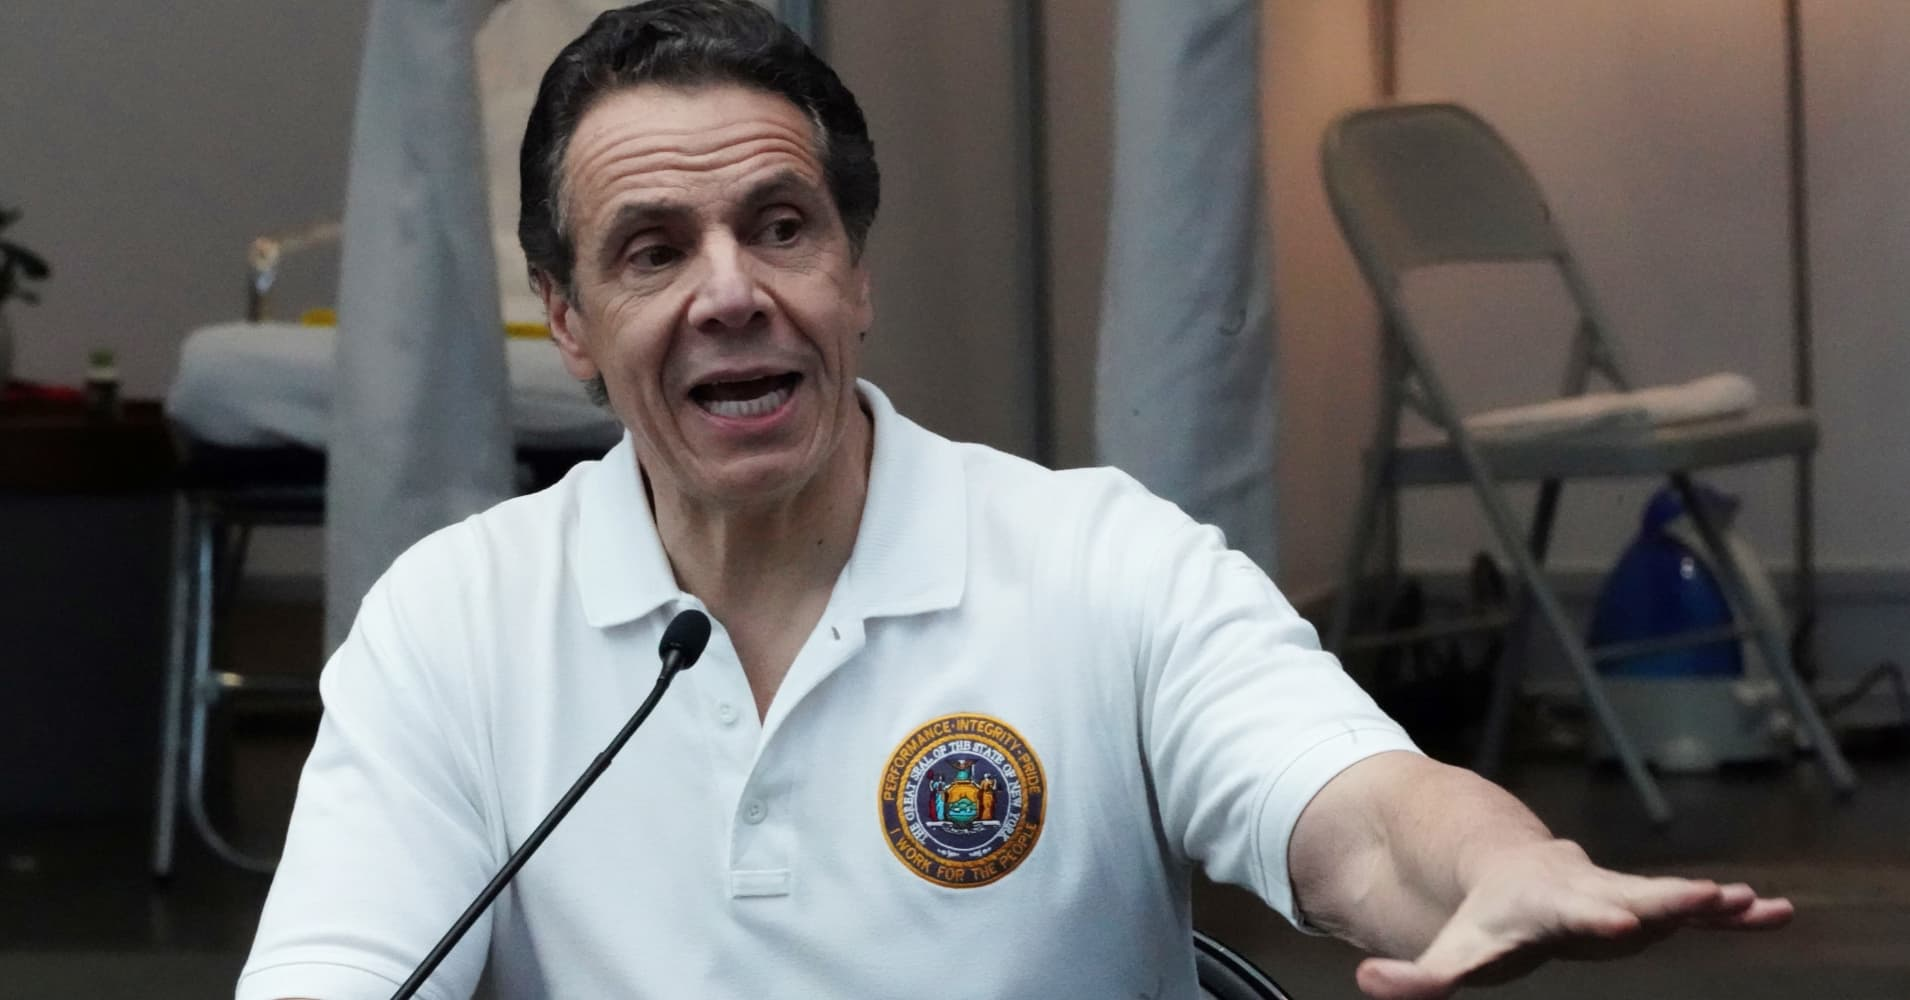 Watch live: New York Gov. Andrew Cuomo holds a press conference on the coronavirus